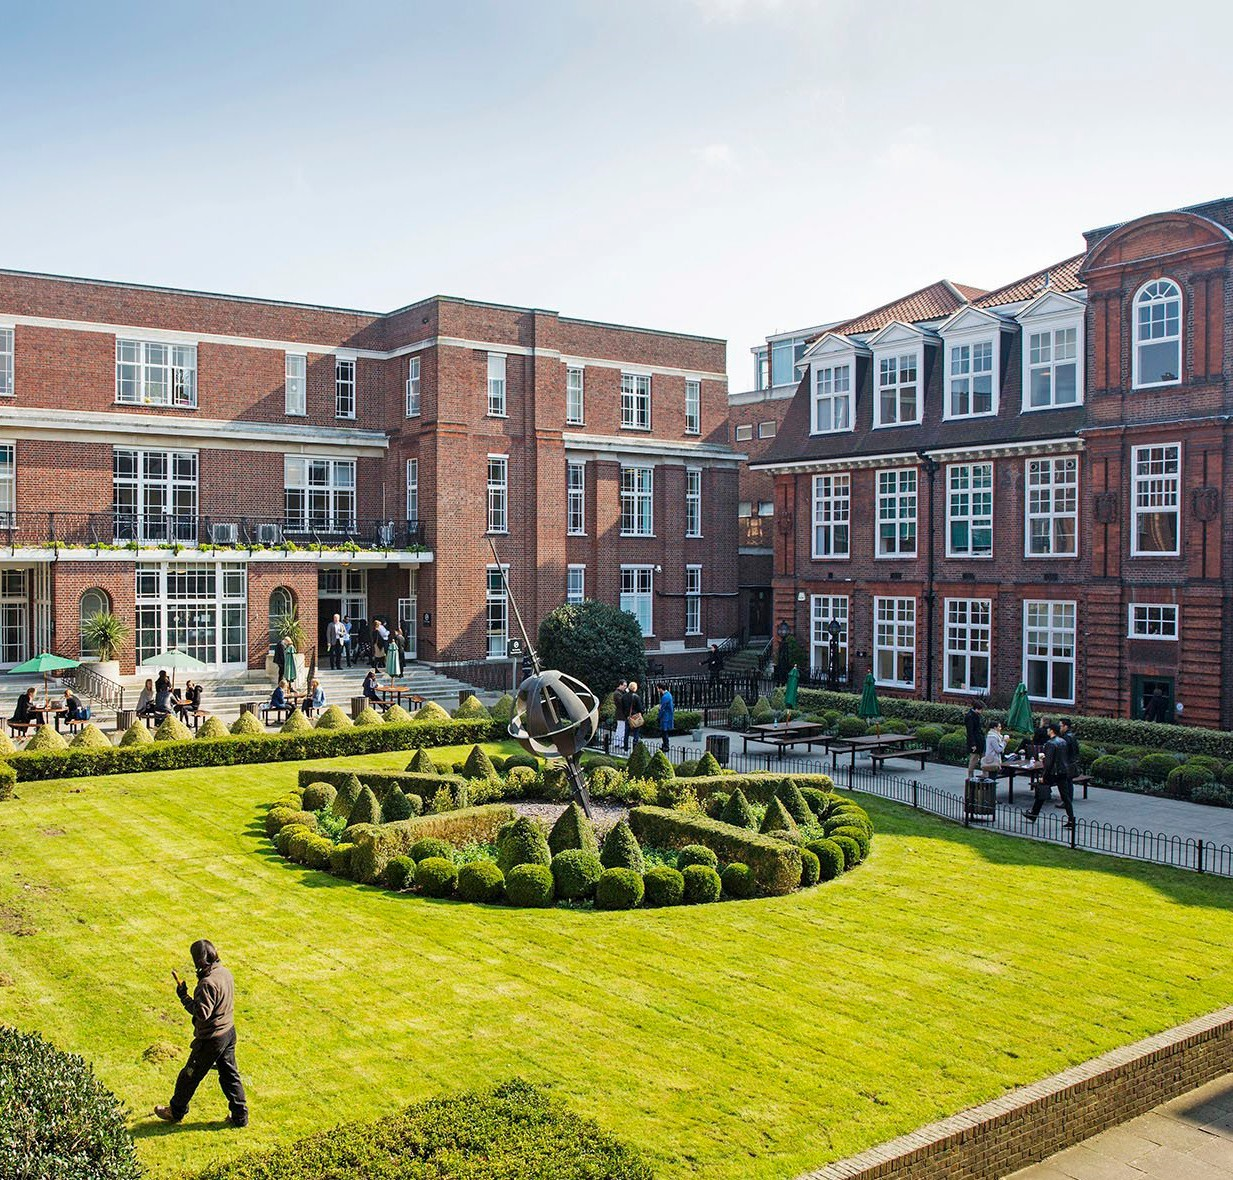 Photo of London Regent's campus overlooking a garden.